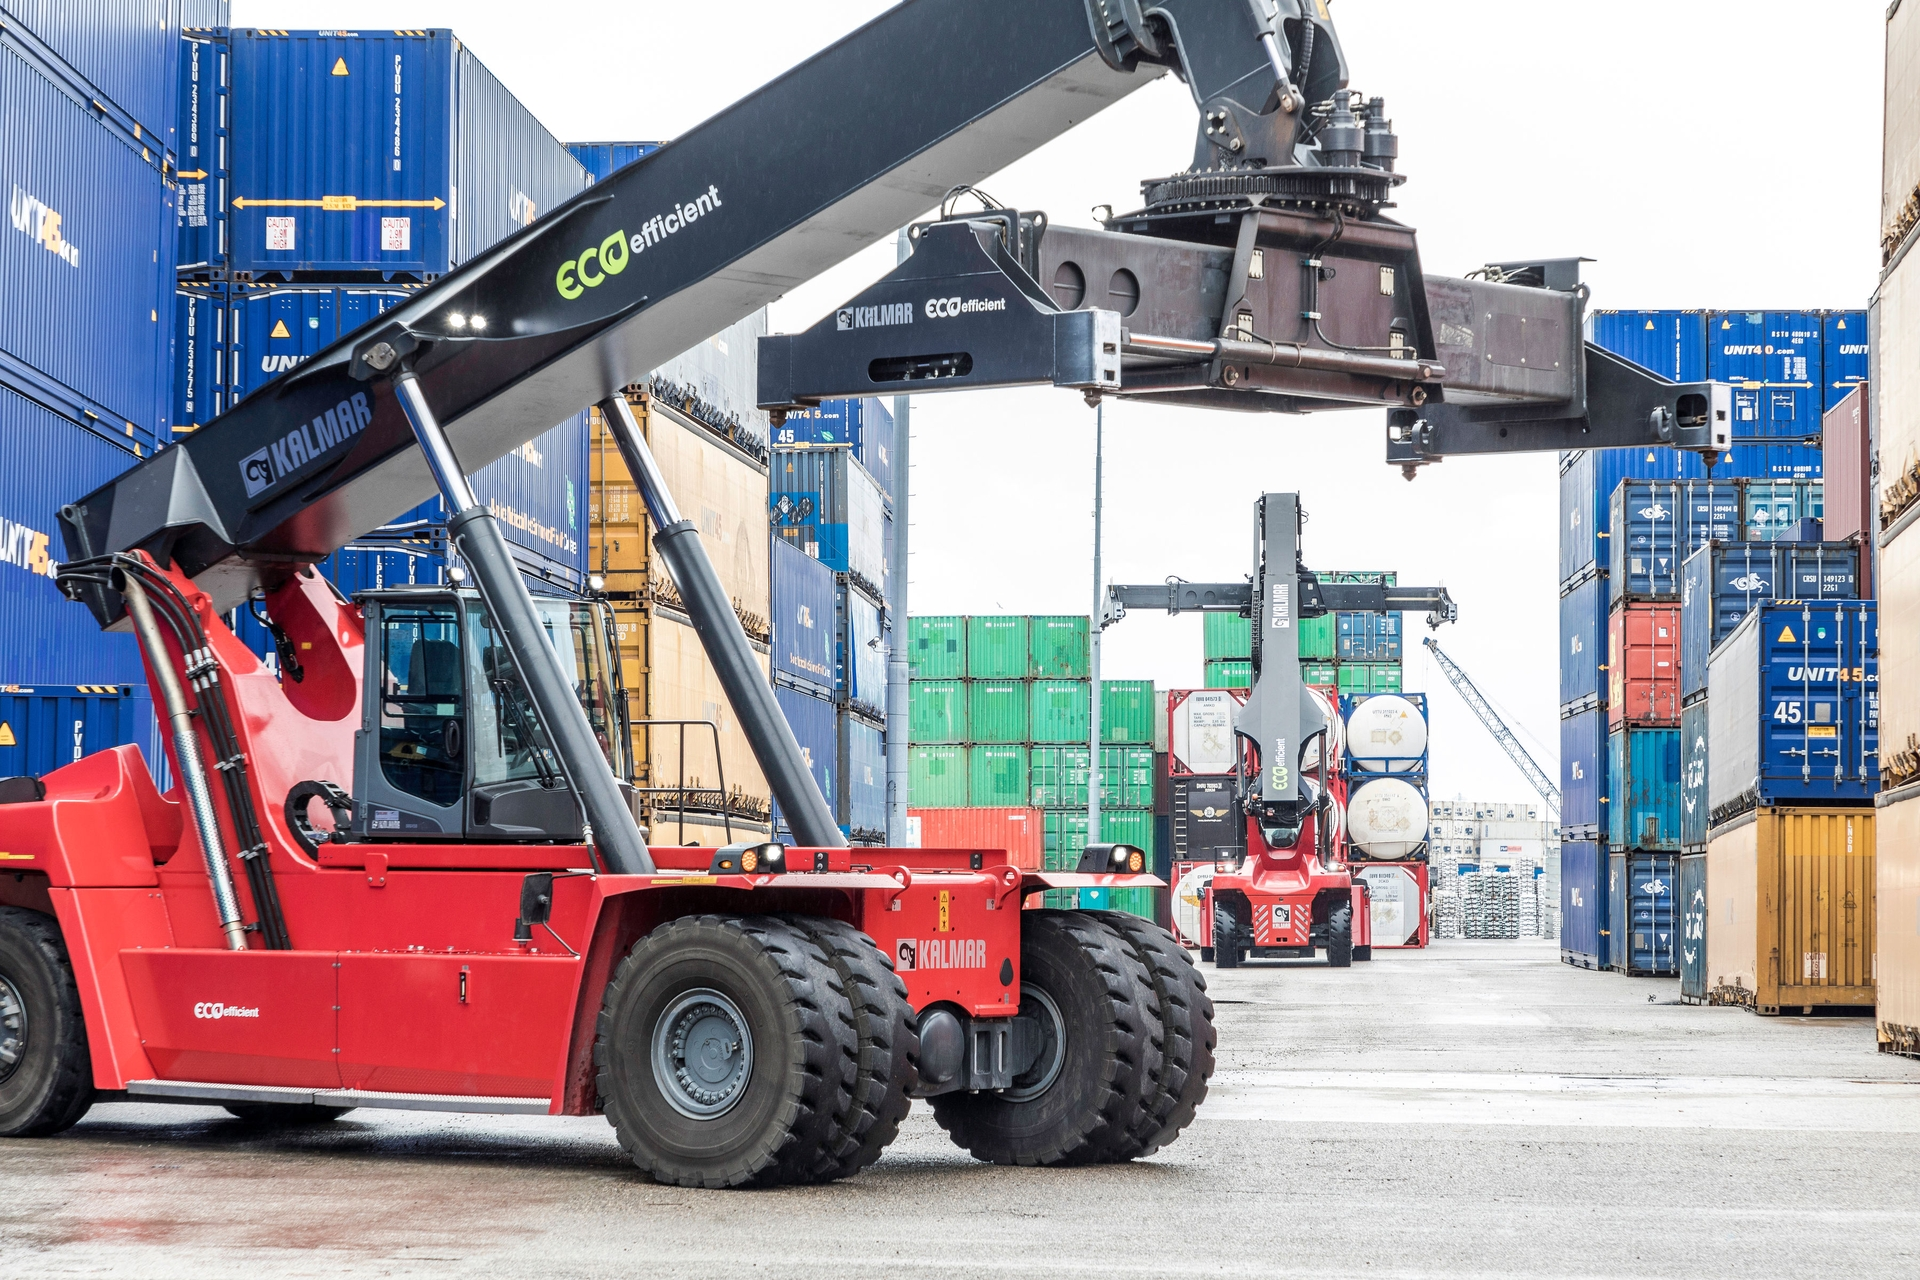 Yilport buys a large batch of mobile equipment from Kalmar